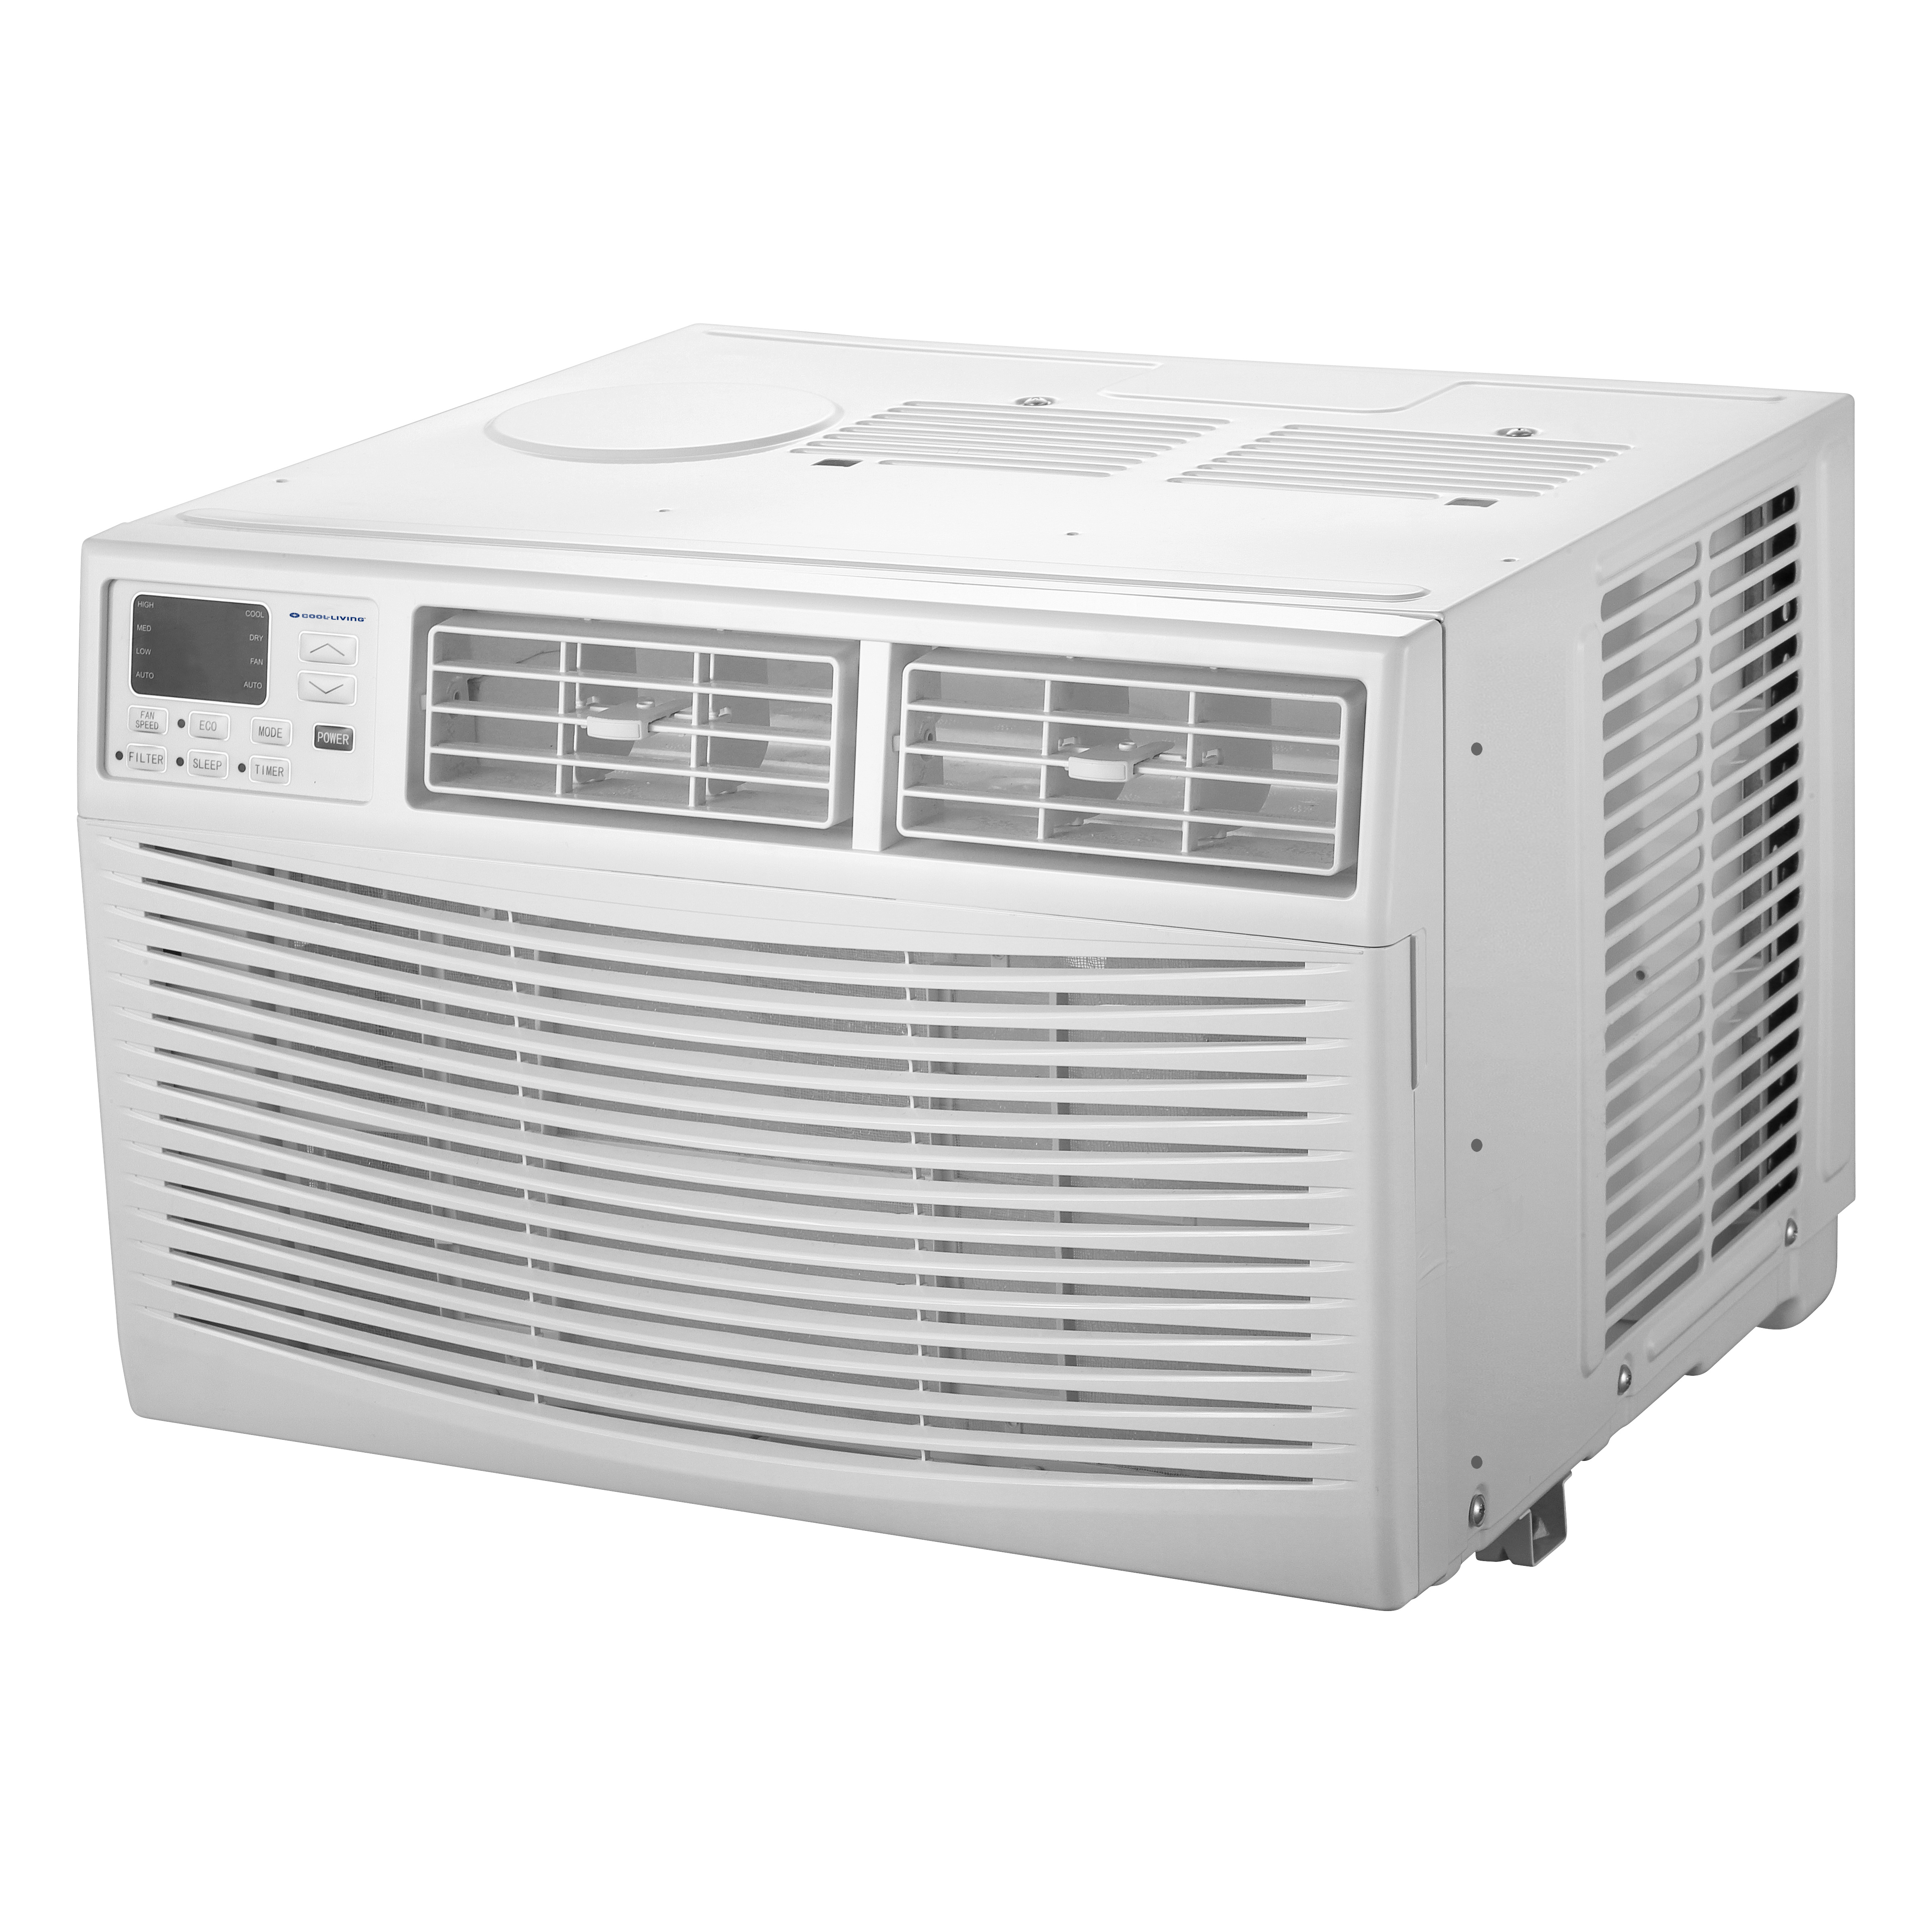 Cool-Living 15,000-BTU Window Air Conditioner with Digital Display and Remote, White